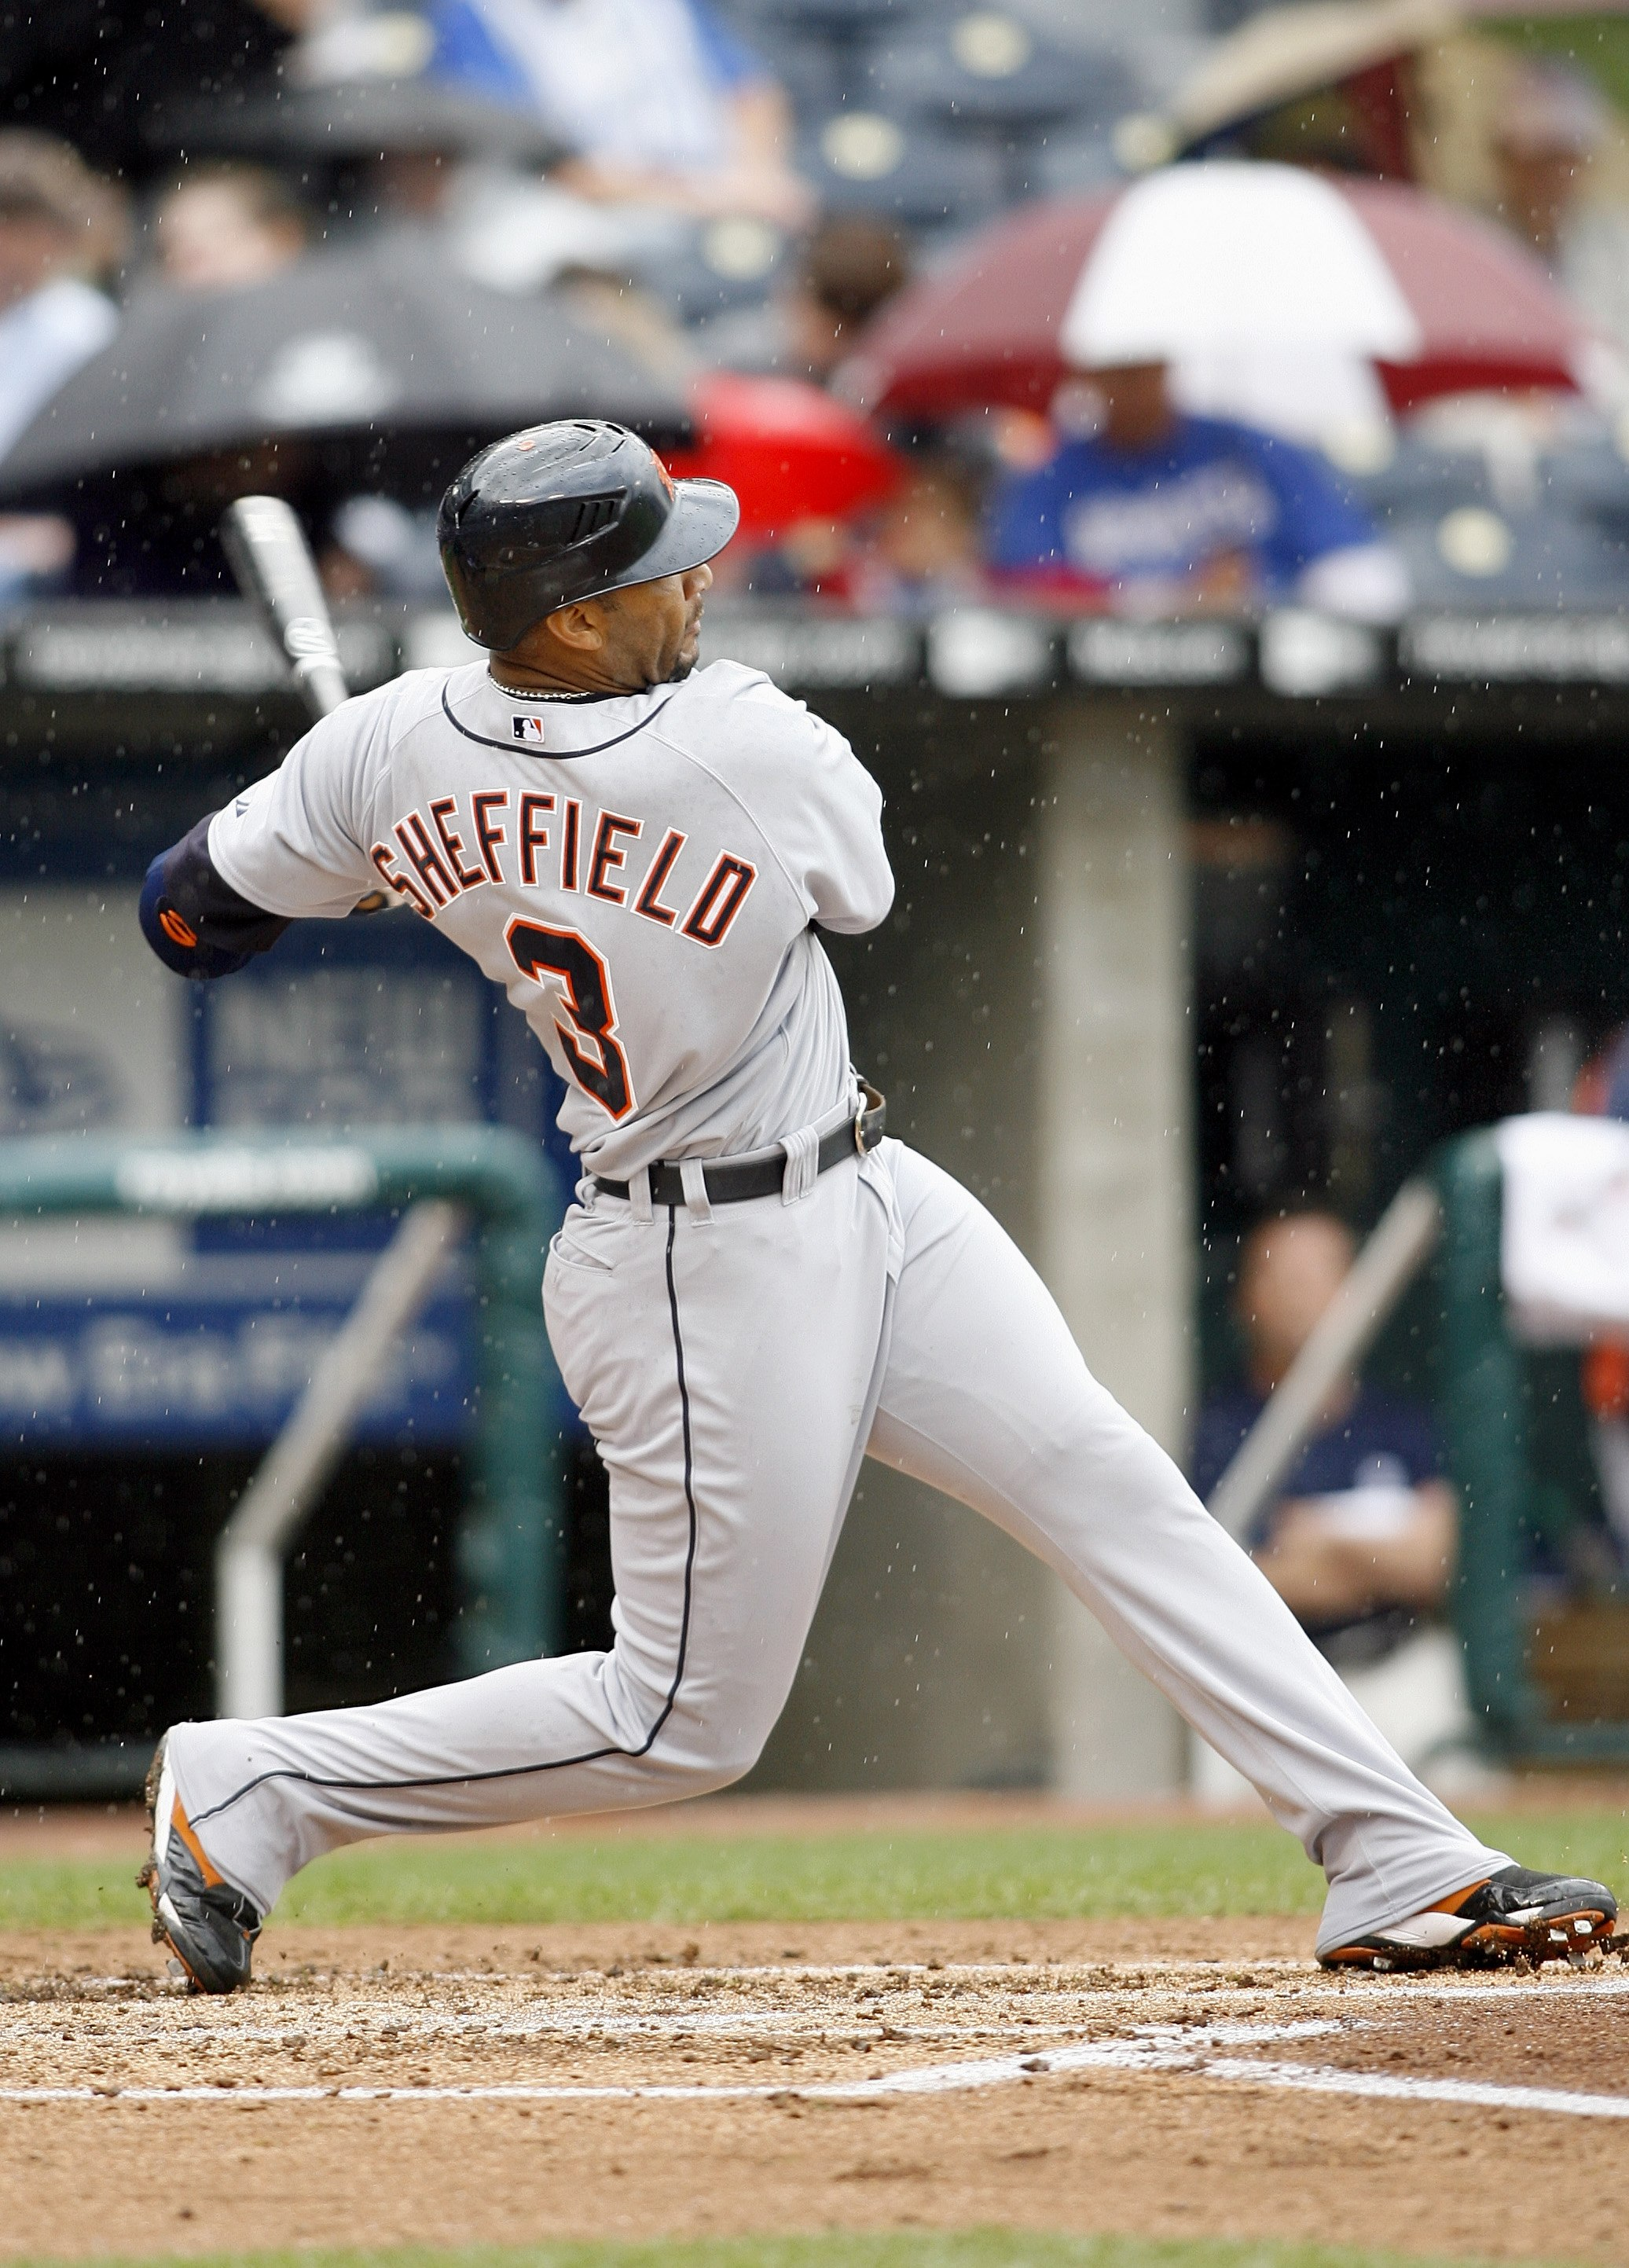 KANSAS CITY, MO - MAY 6: Gary Sheffield #3 of the Detroit Tigers swings at the pitch against the Kansas City Royals on May 6, 2007 at Kauffman Stadium in Kansas City, Missouri.  (Photo by G. Newman Lowrance/Getty Images)